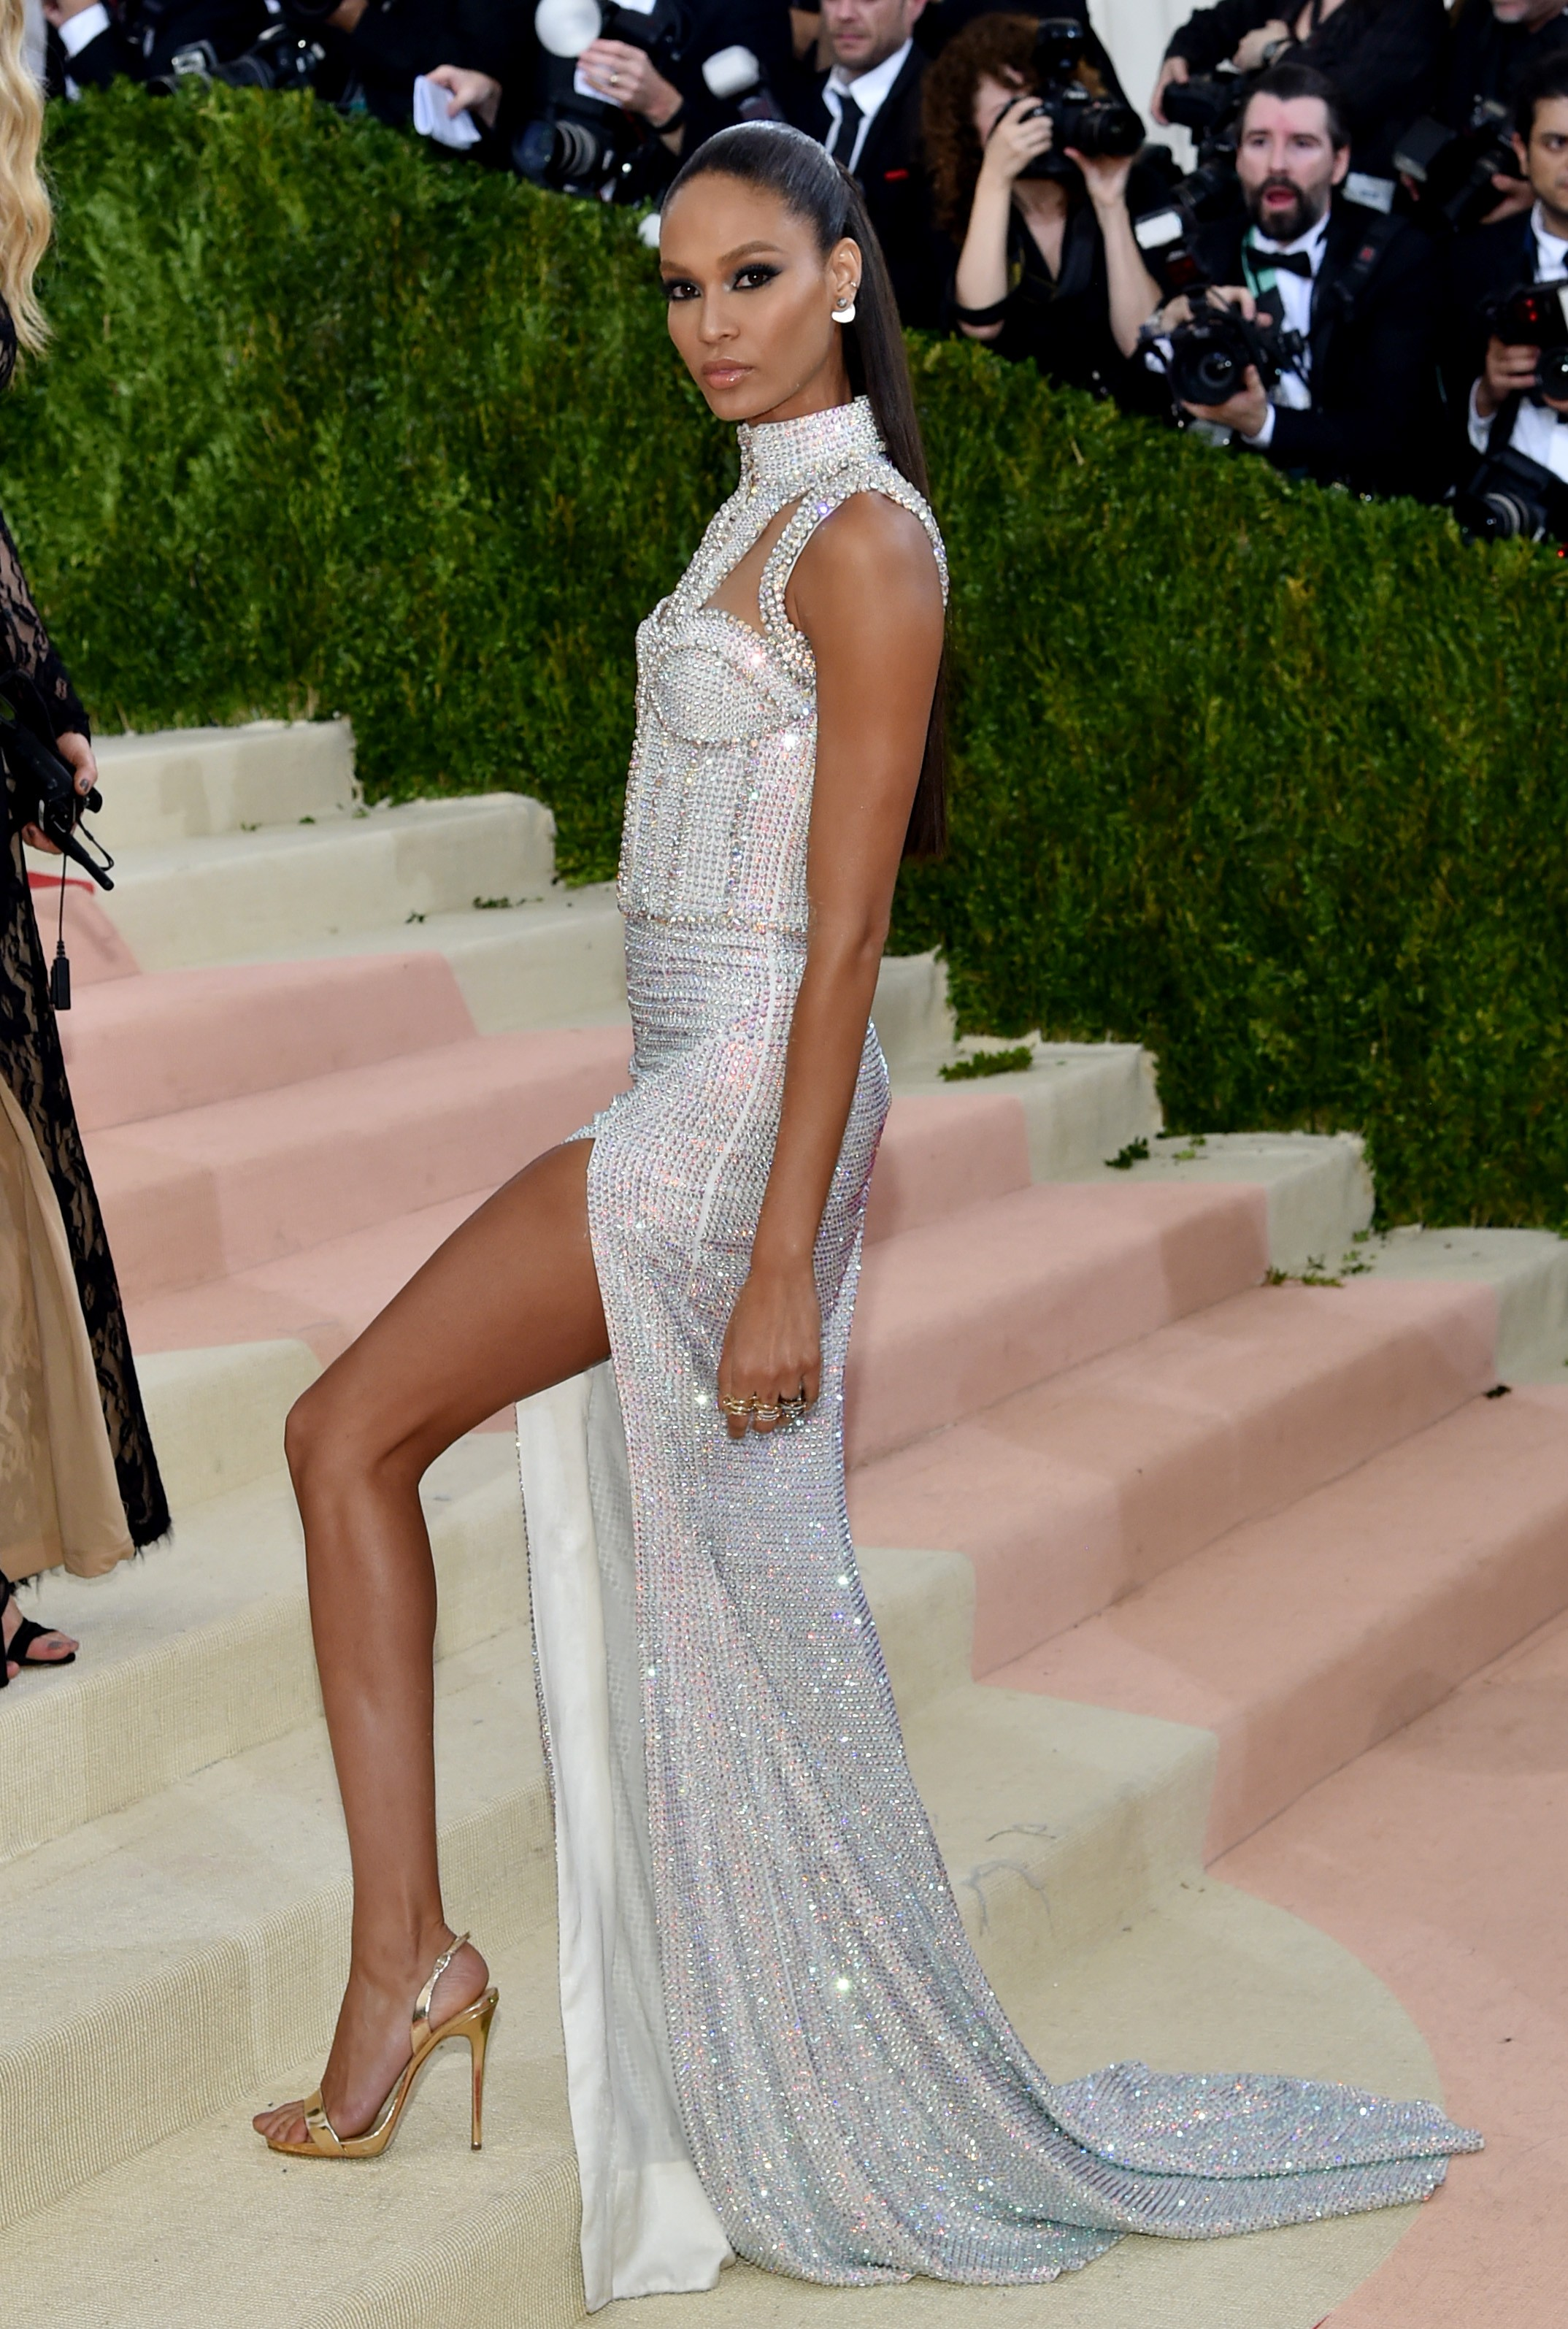 Mandatory Credit: Photo by Andrew H. Walker/REX/Shutterstock (5669035pv) Joan Smalls The Metropolitan Museum of Art's COSTUME INSTITUTE Benefit Celebrating the Opening of Manus x Machina: Fashion in an Age of Technology, Arrivals, The Metropolitan Museum of Art, NYC, New York, America - 02 May 2016